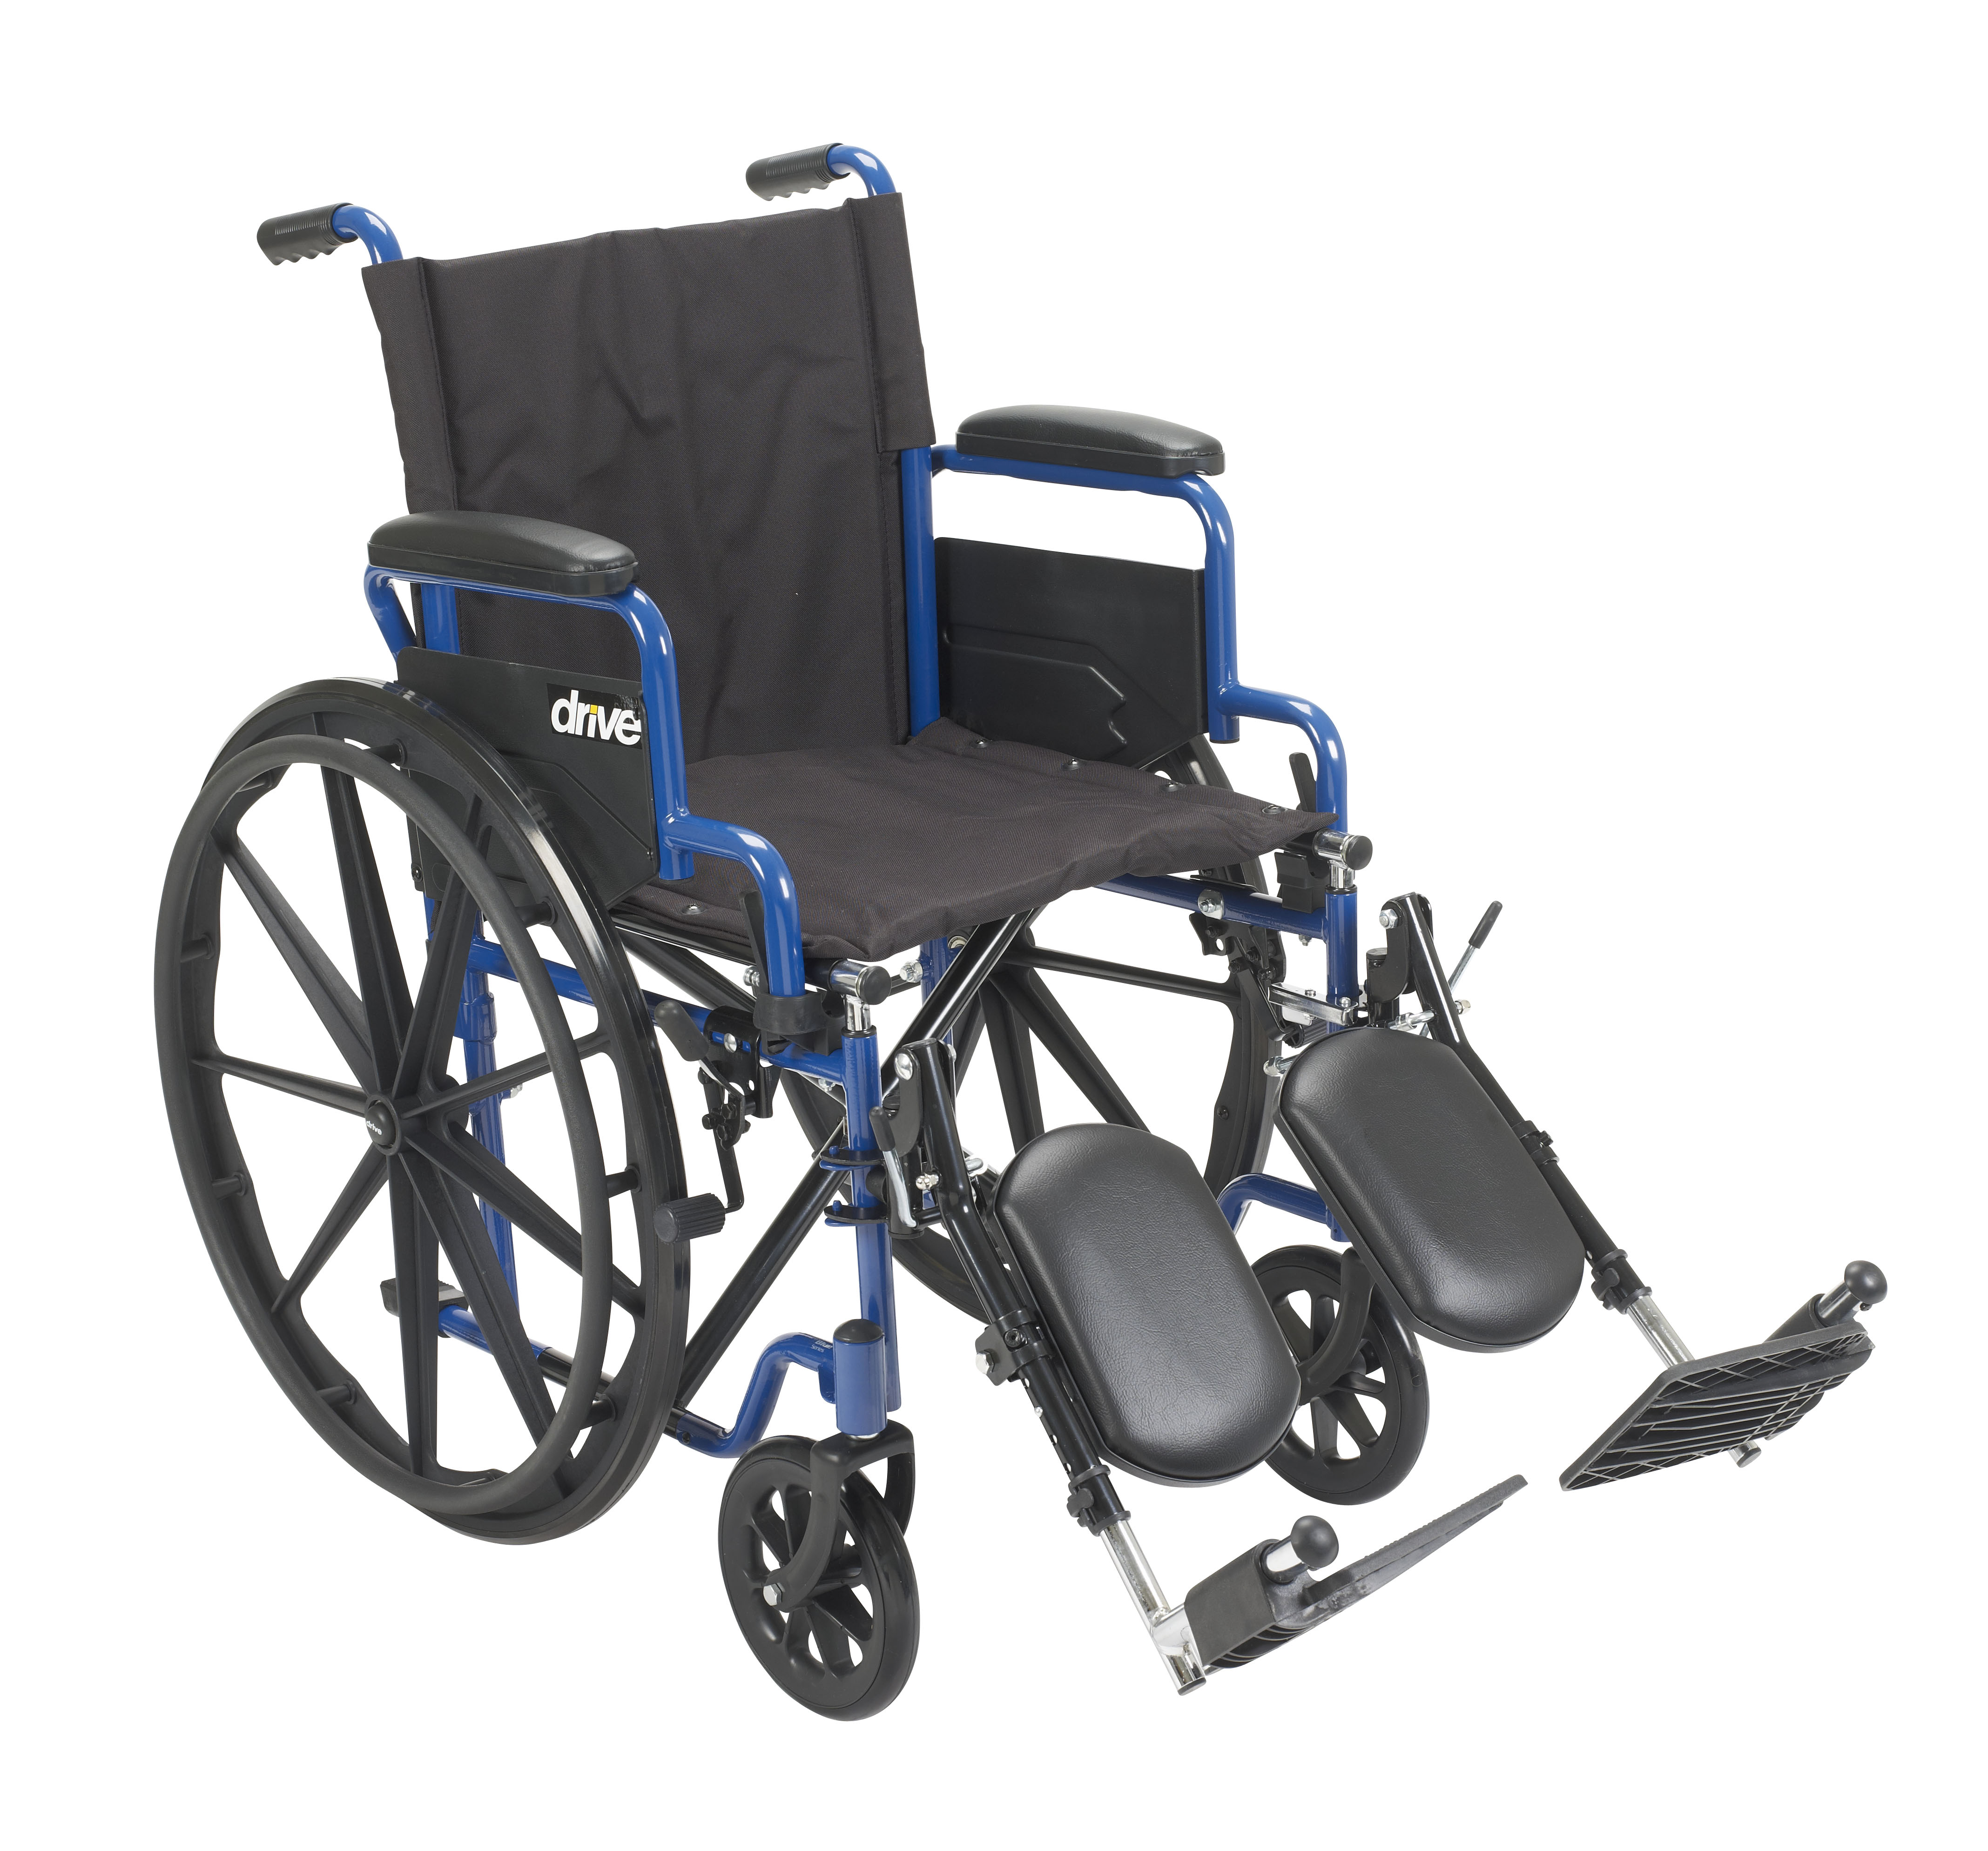 drive wheel chair heated lumbar support for office medical blue streak wheelchair with flip back desk arms elevating leg rests 18 seat walmart com